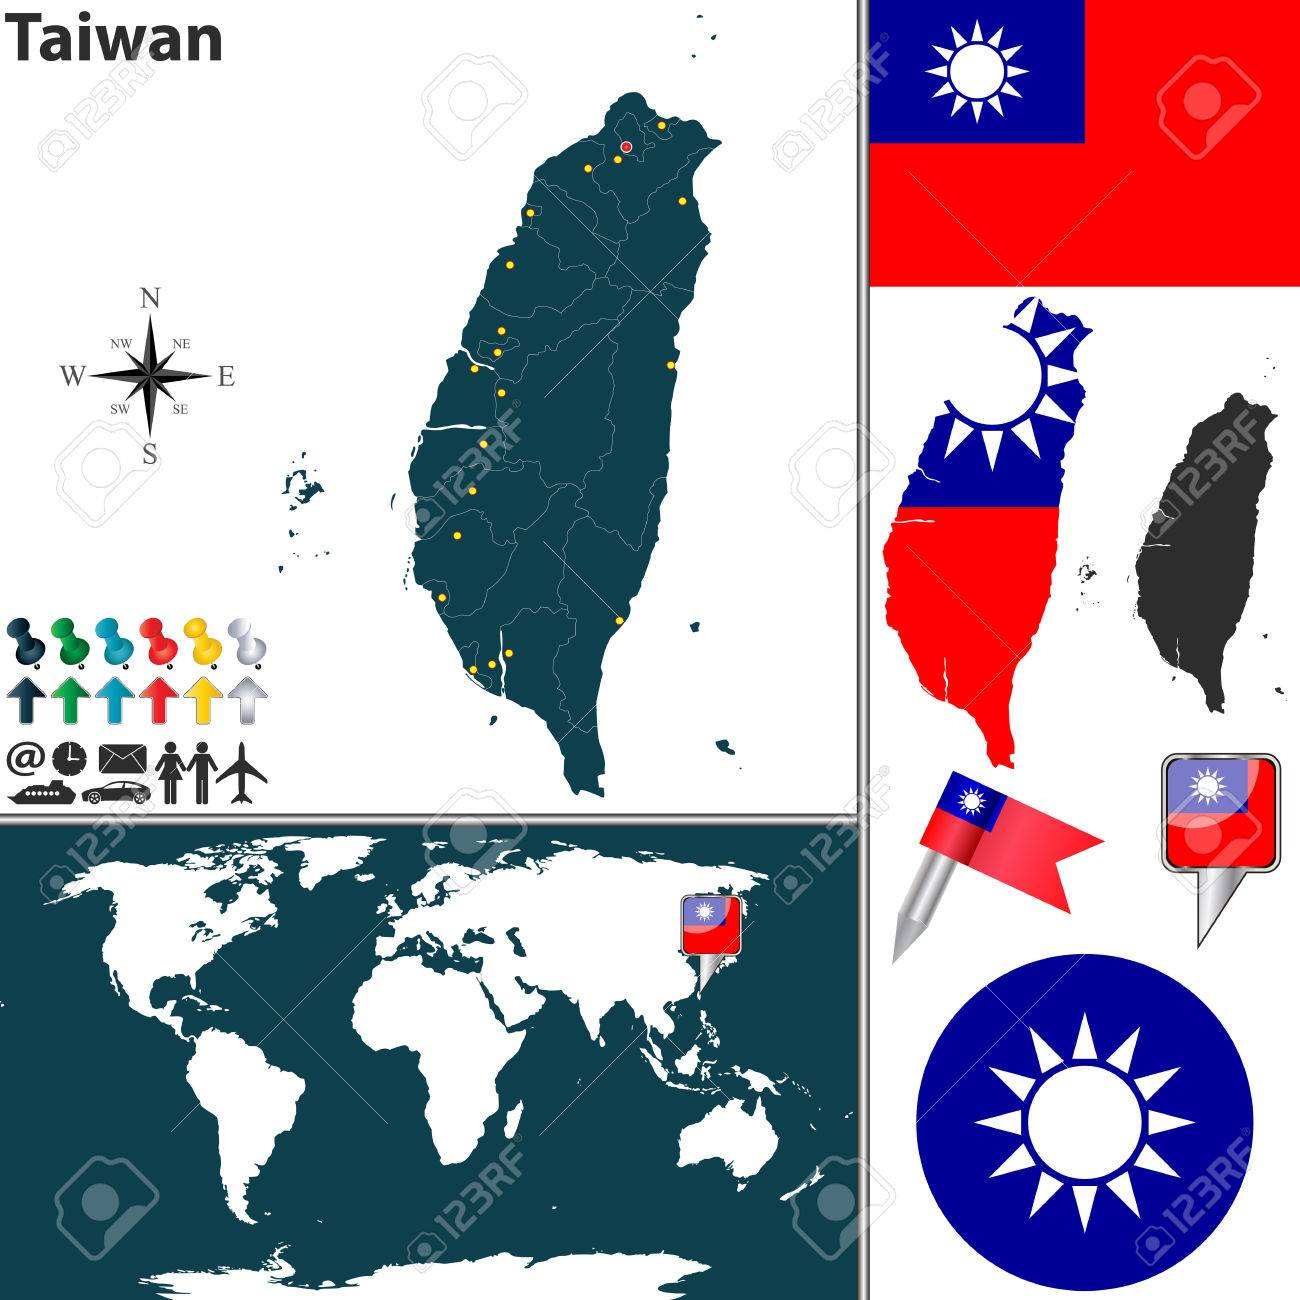 Map of taiwan with regions coat of arms and location on world map of taiwan with regions coat of arms and location on world map stock vector gumiabroncs Images